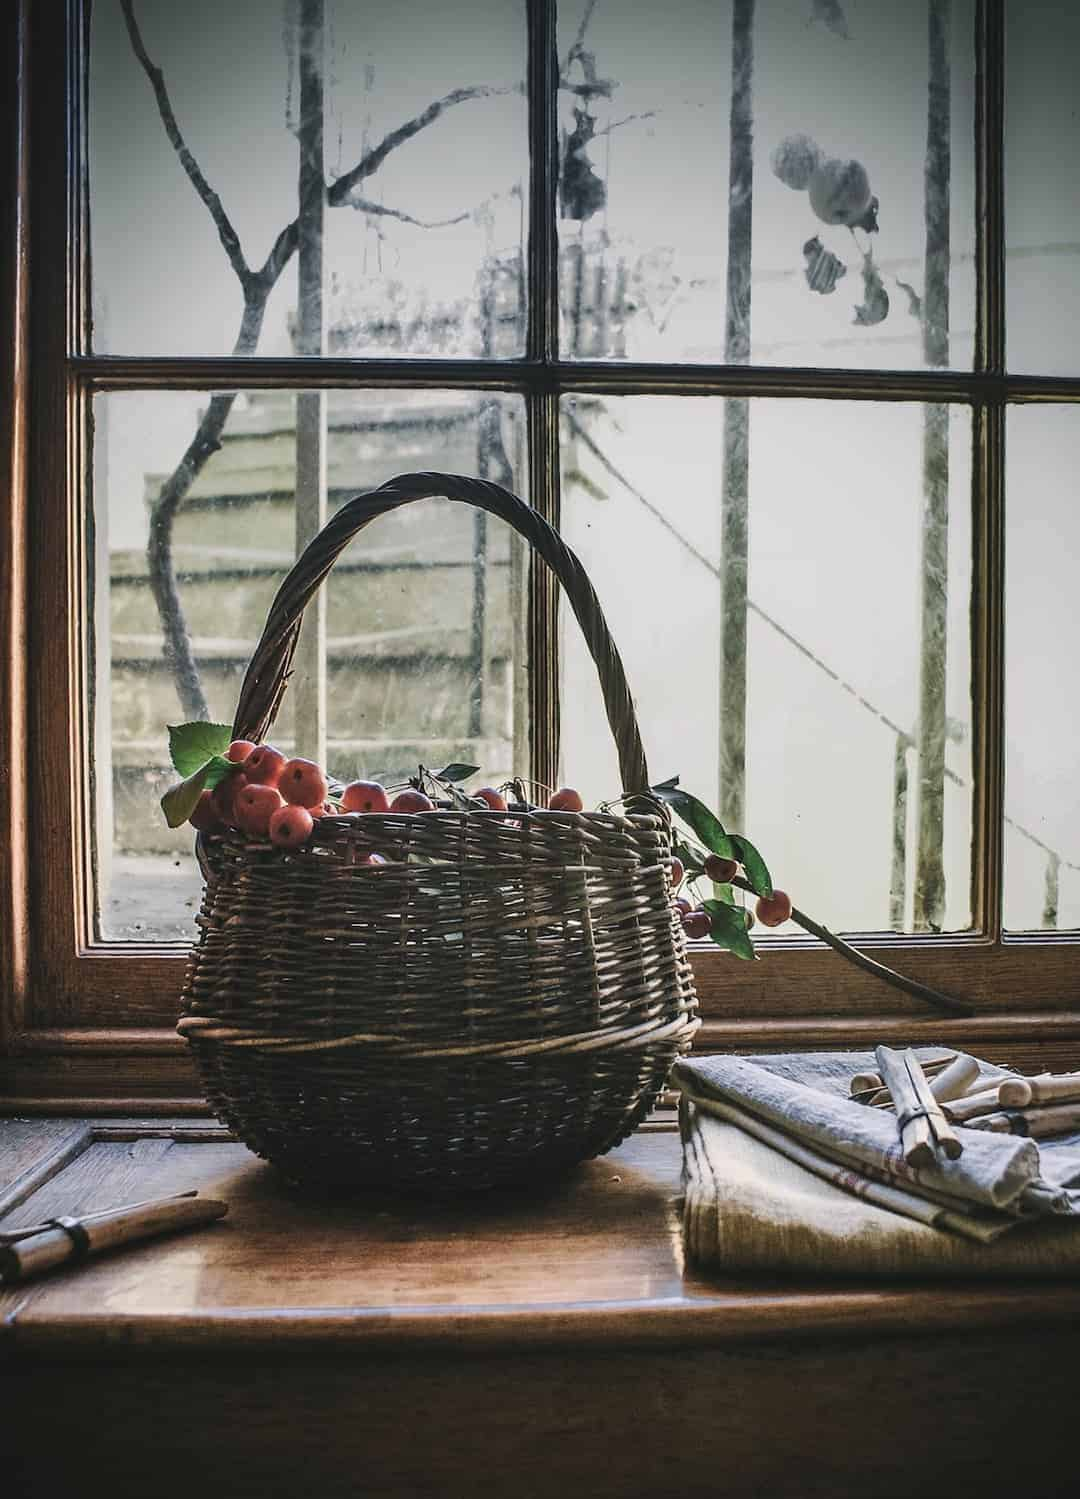 love this vintage basket with crab apples at old regency window with linen and wooden clothes pegs at The Regency Townhouse for the launch of Conscious Creativity by Philippa Stanton aka @5ftinf. Click through for a peek inside and a look behind the scenes at the launch workshop